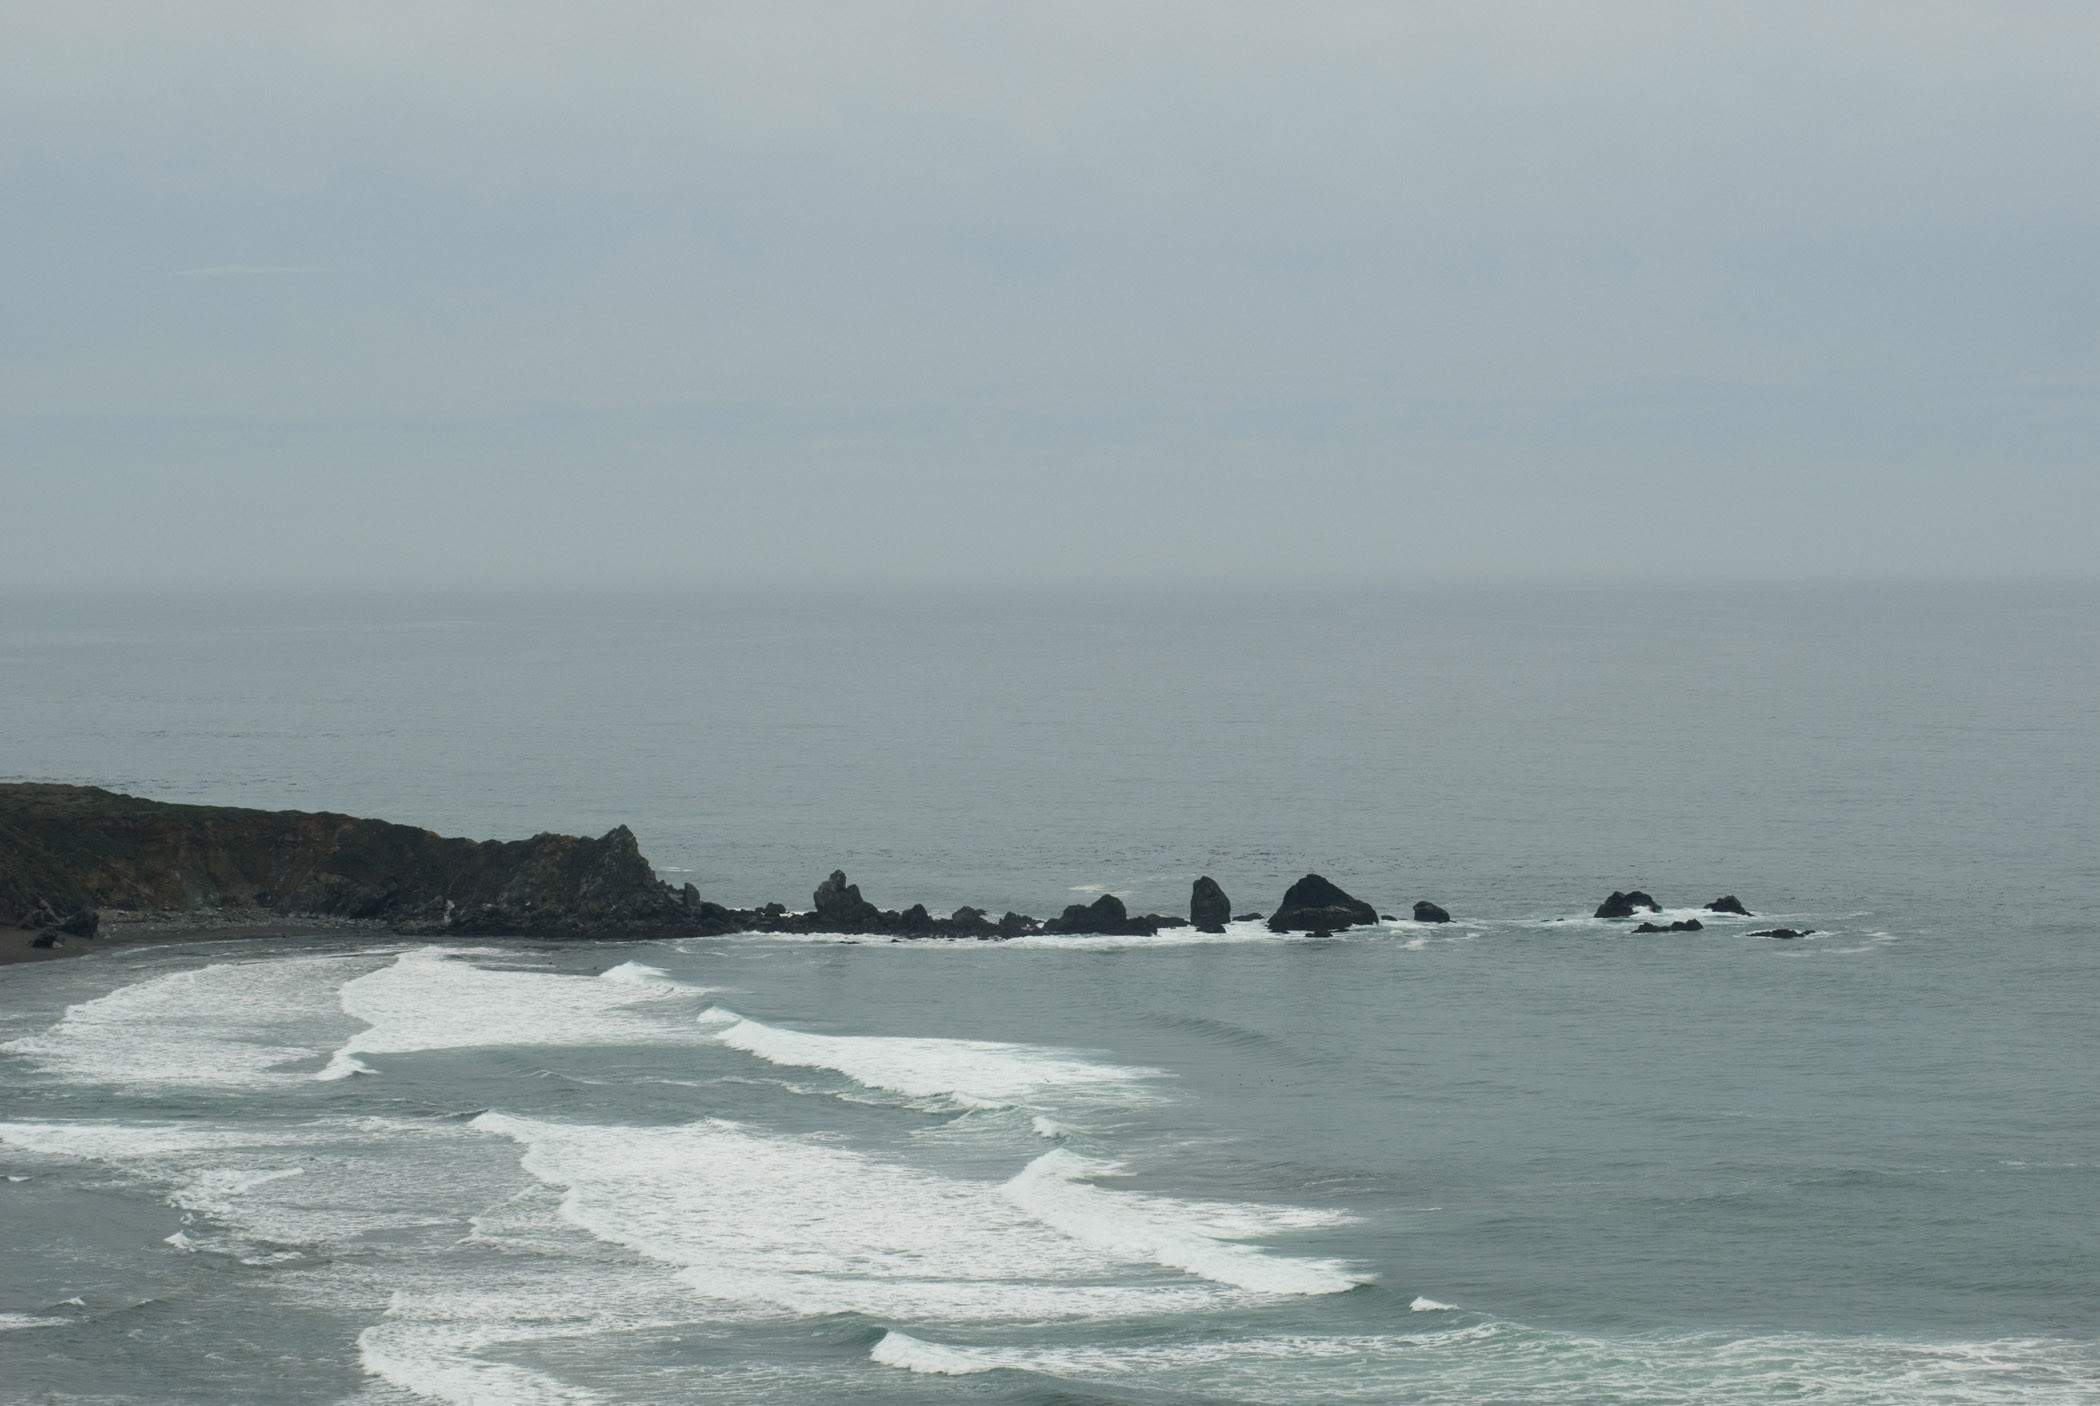 Calfornia Coastline and Rock Formations Along Big Sur Under Overcast Sky